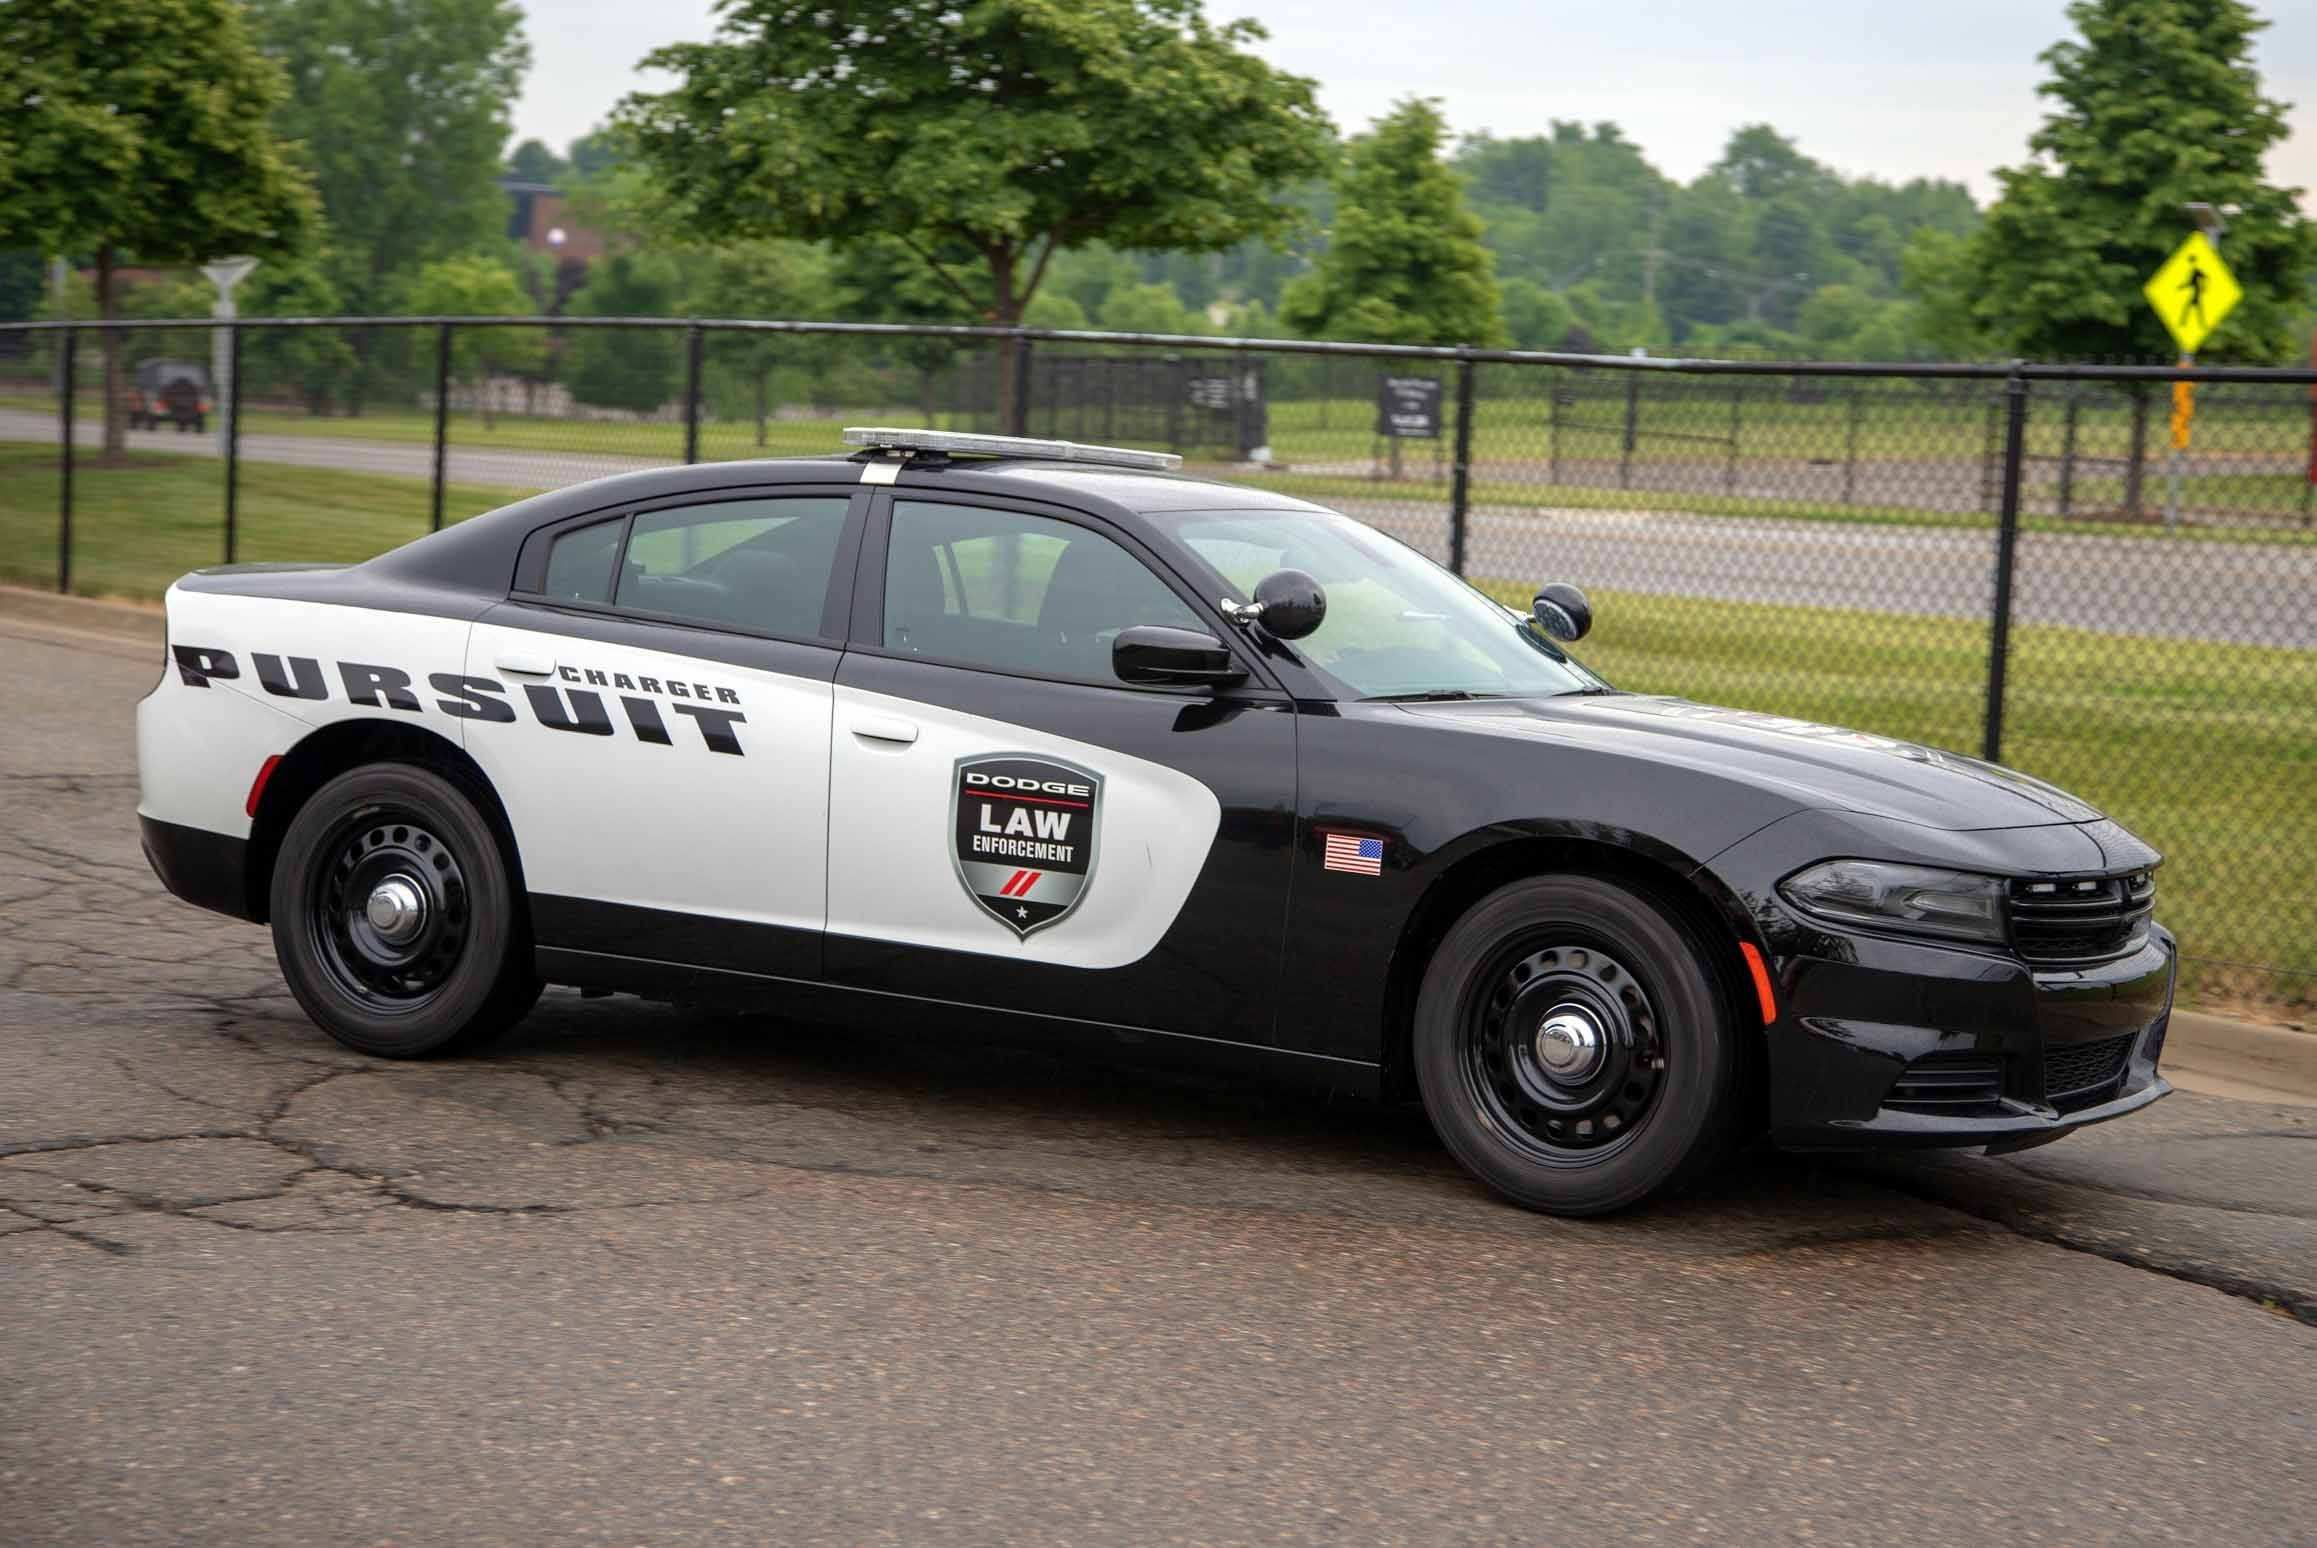 68 All New 2020 Dodge Charger Police Release Date And Concept